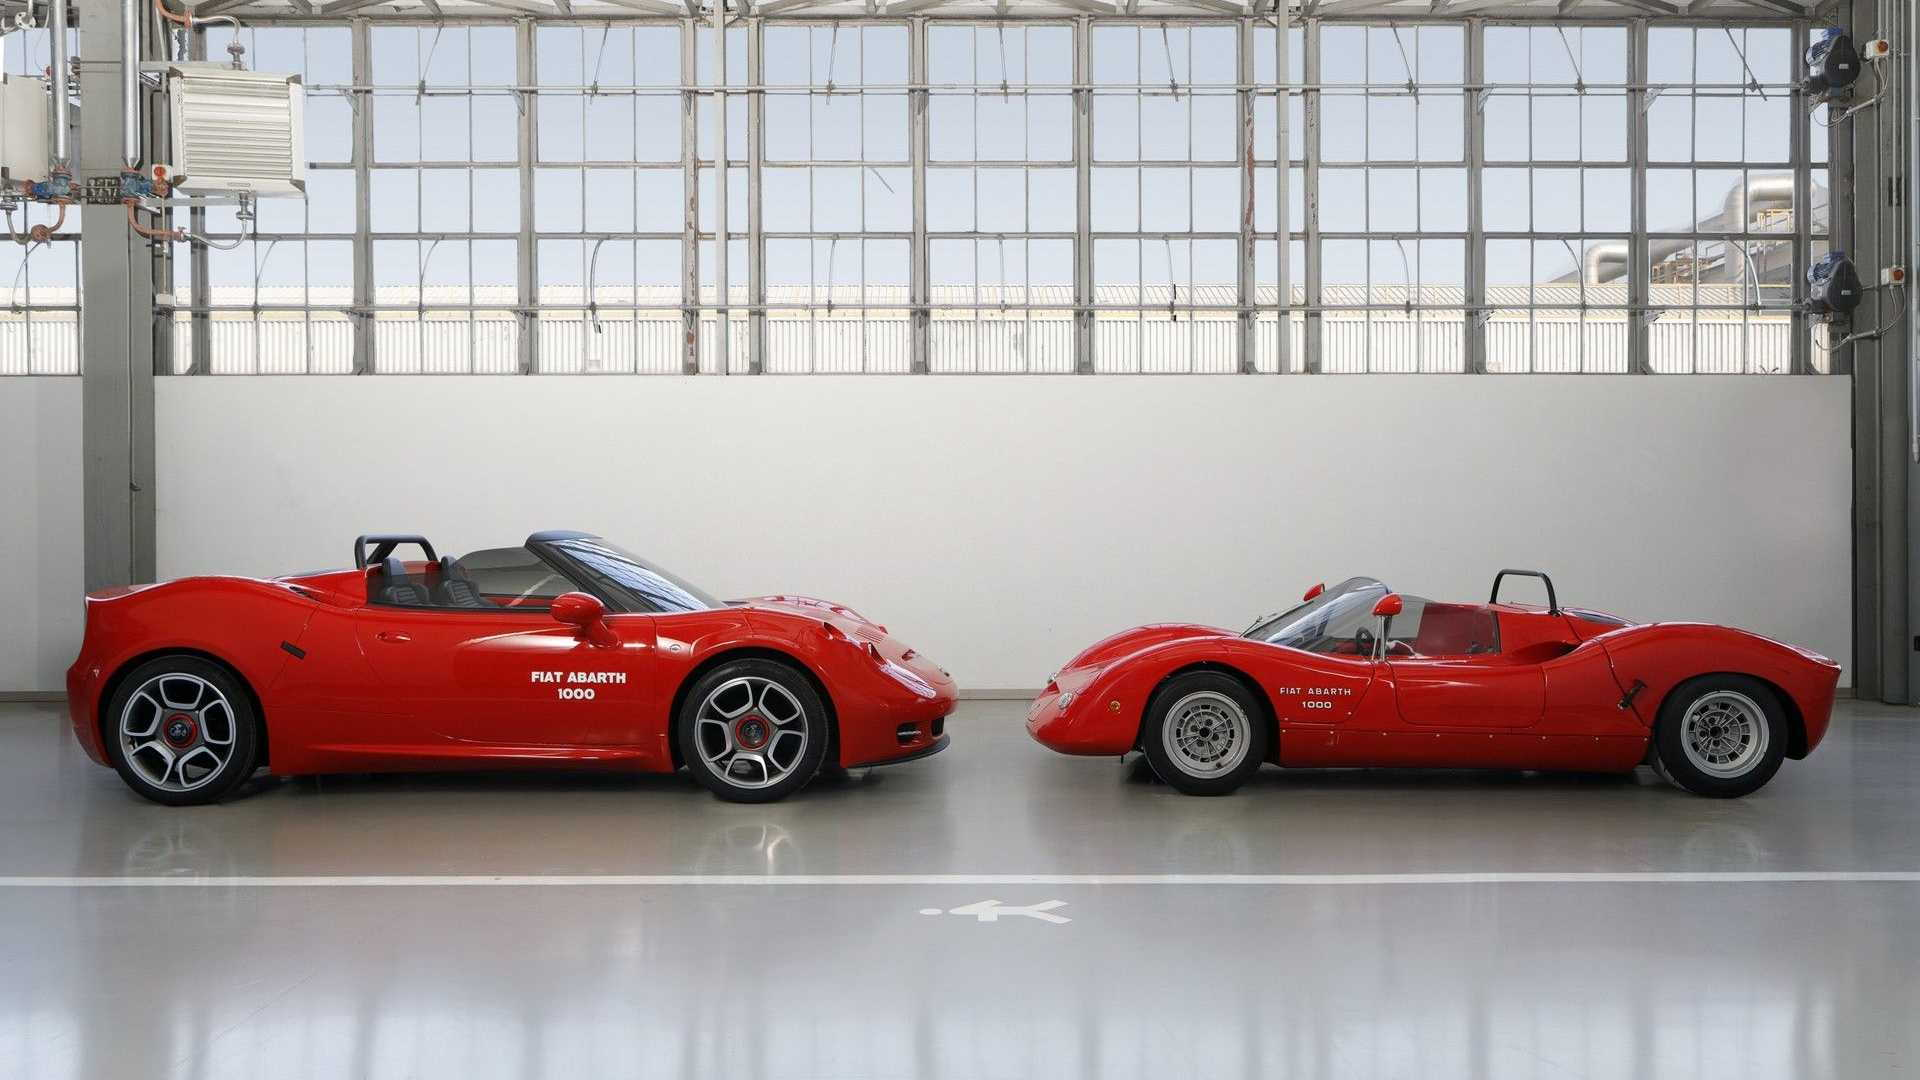 1966 Fiat Abarth 1000 SP with Fiat Abarth 1000 SP concept